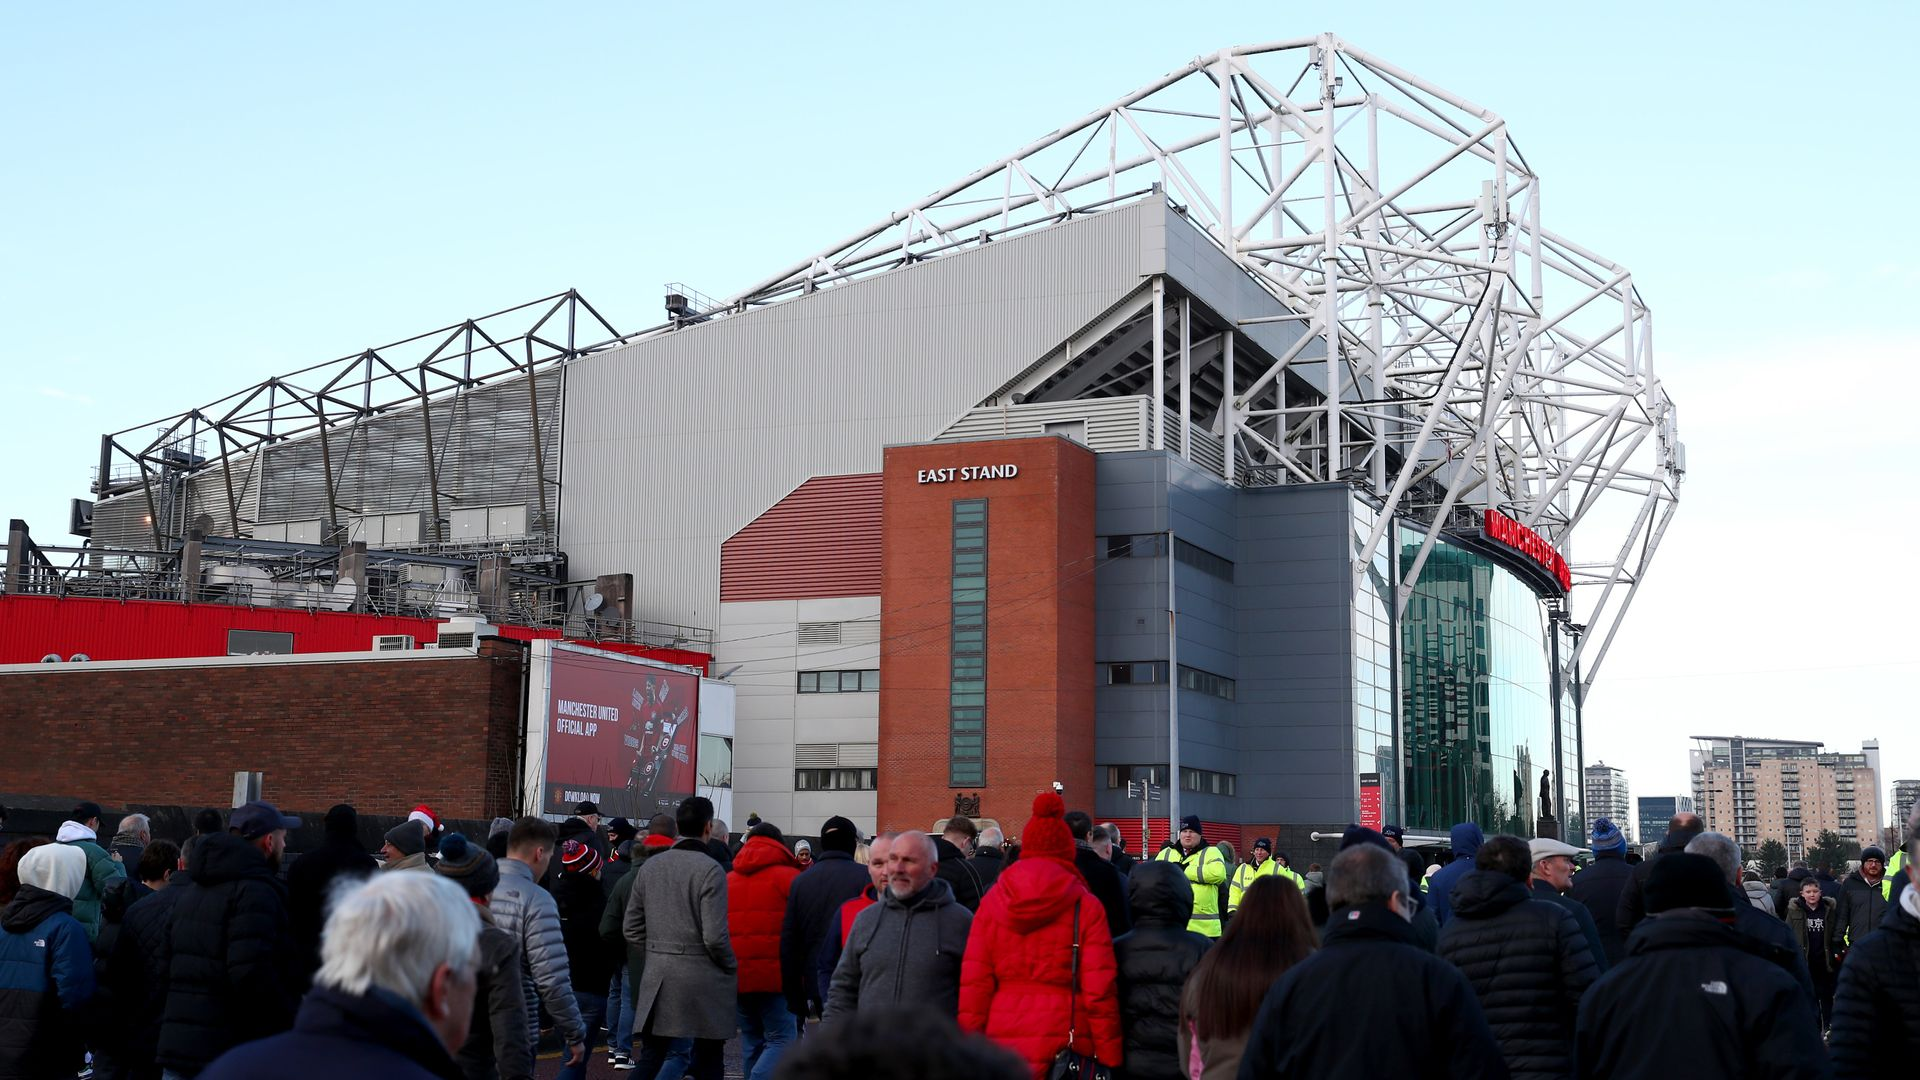 Man Utd provisionally plan for fans' return